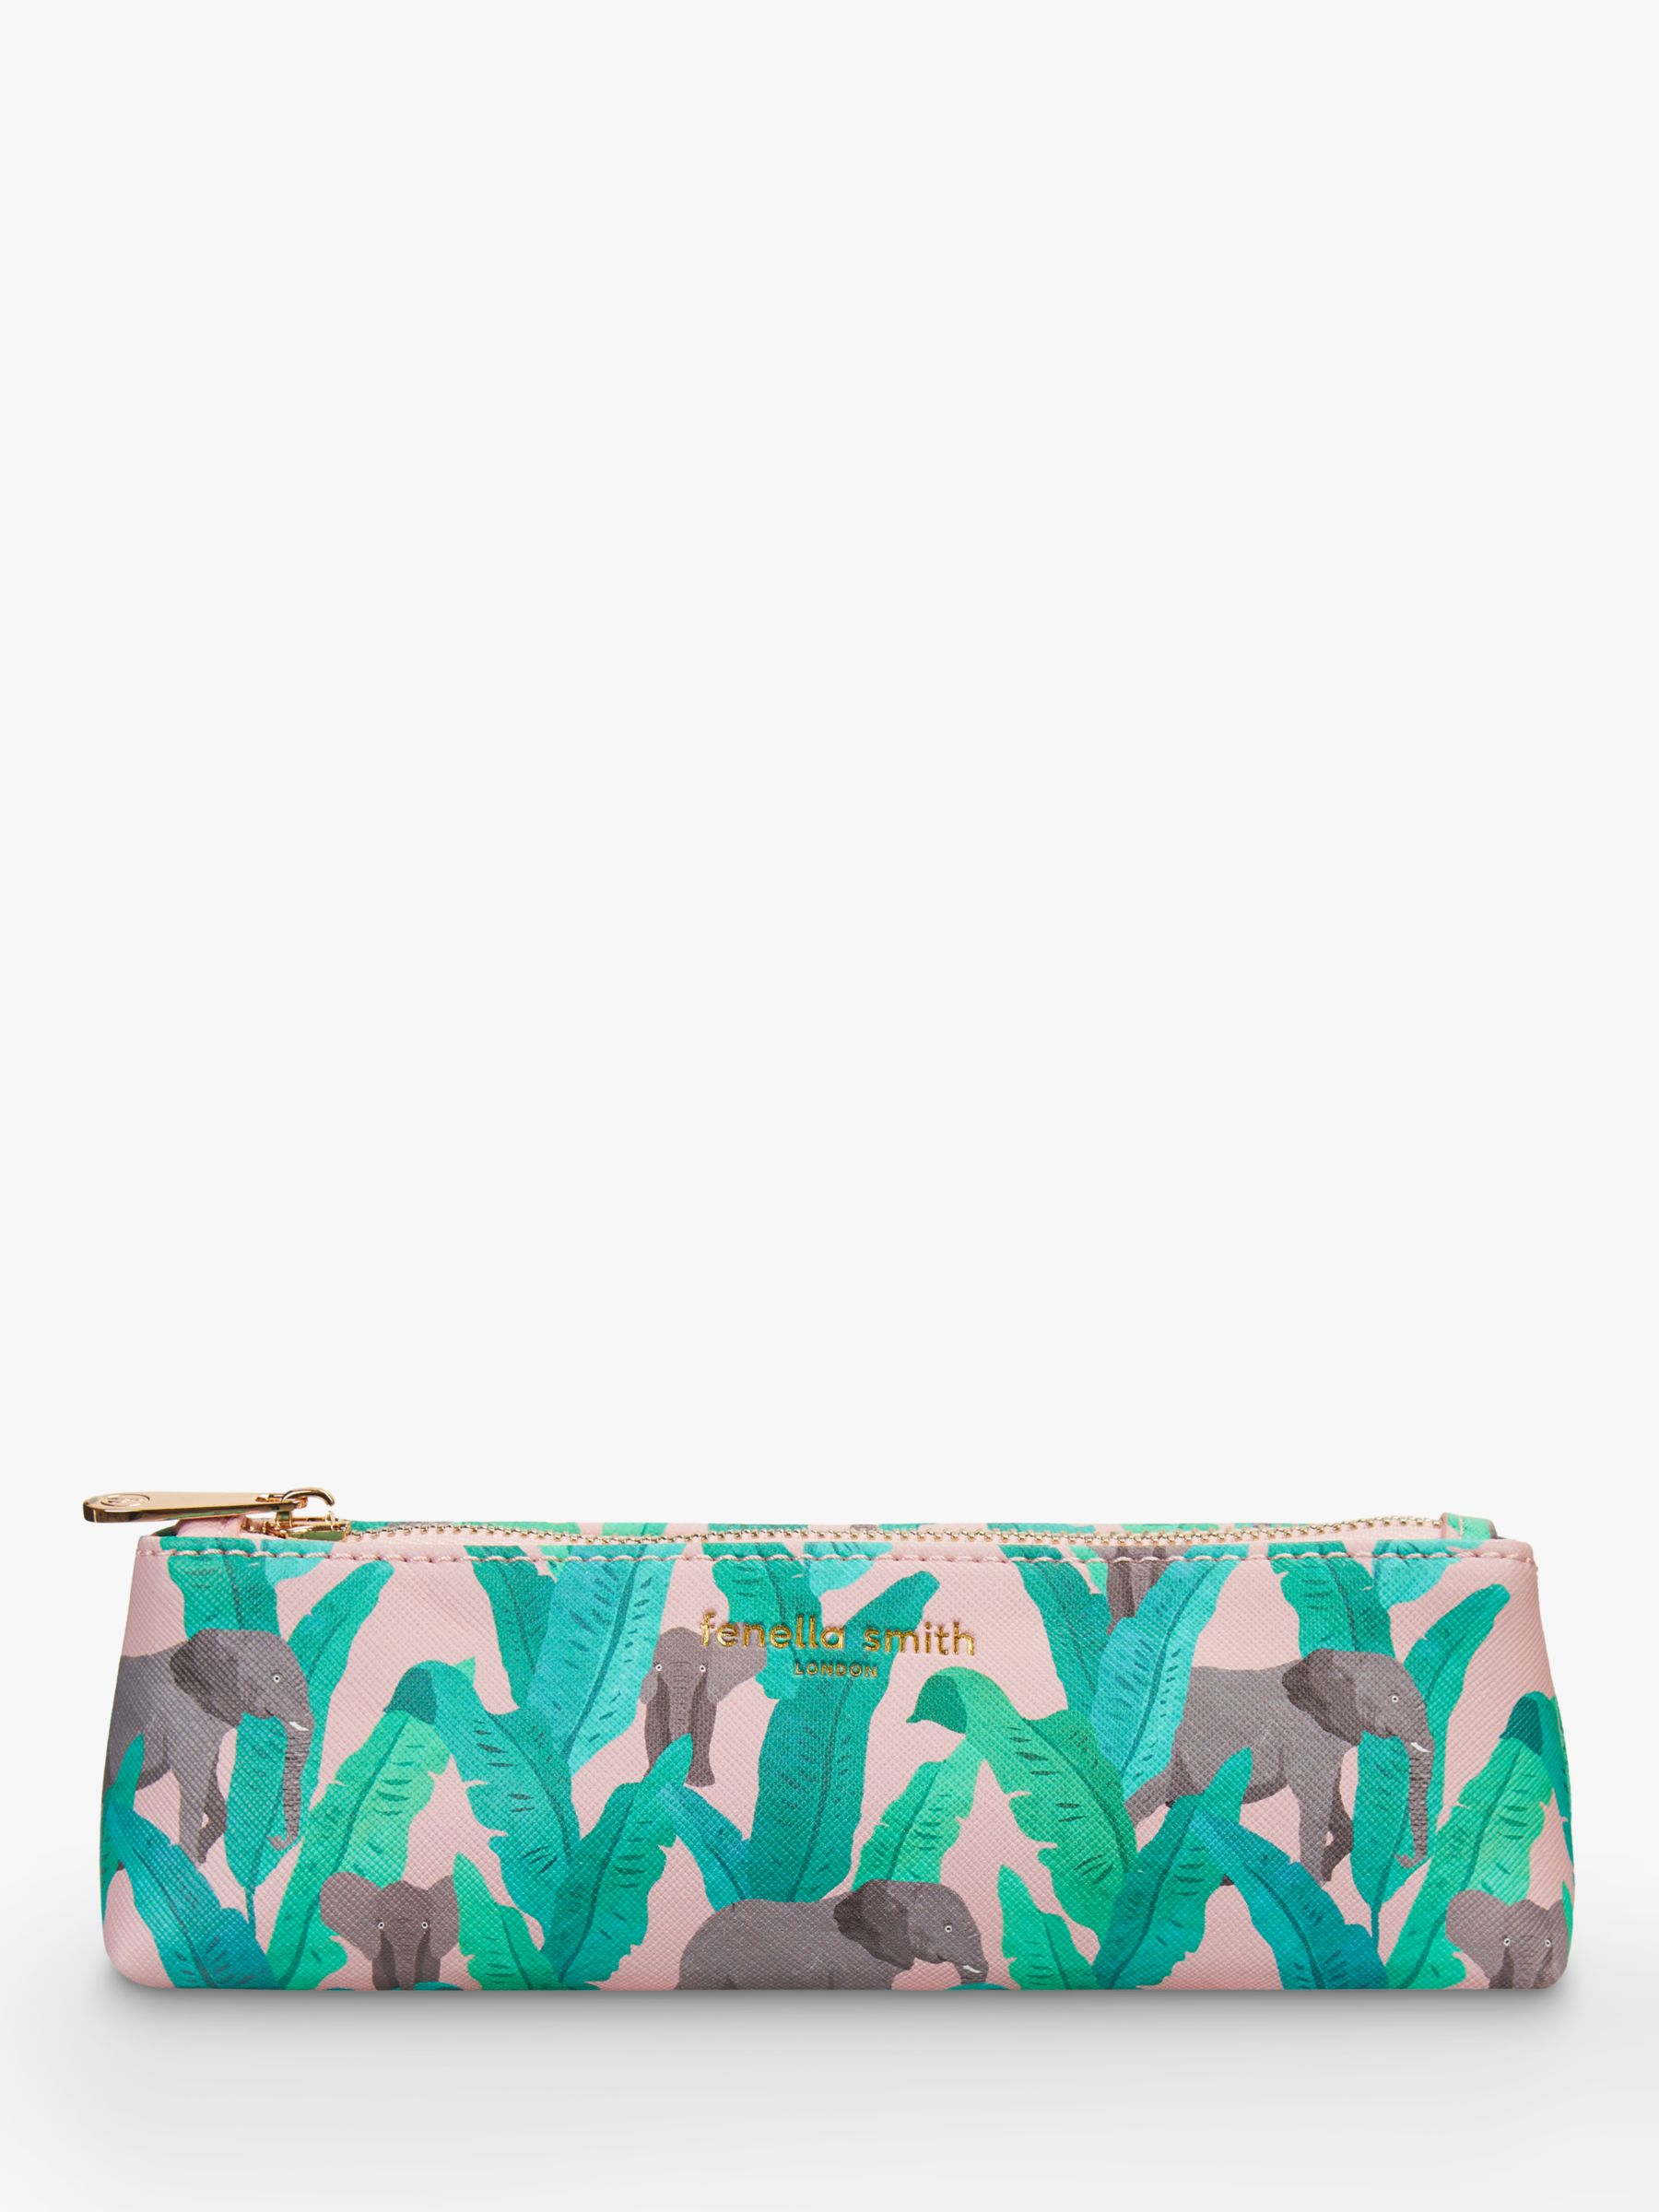 Fenella Smith Fenella Smith Elephant Pencil Case